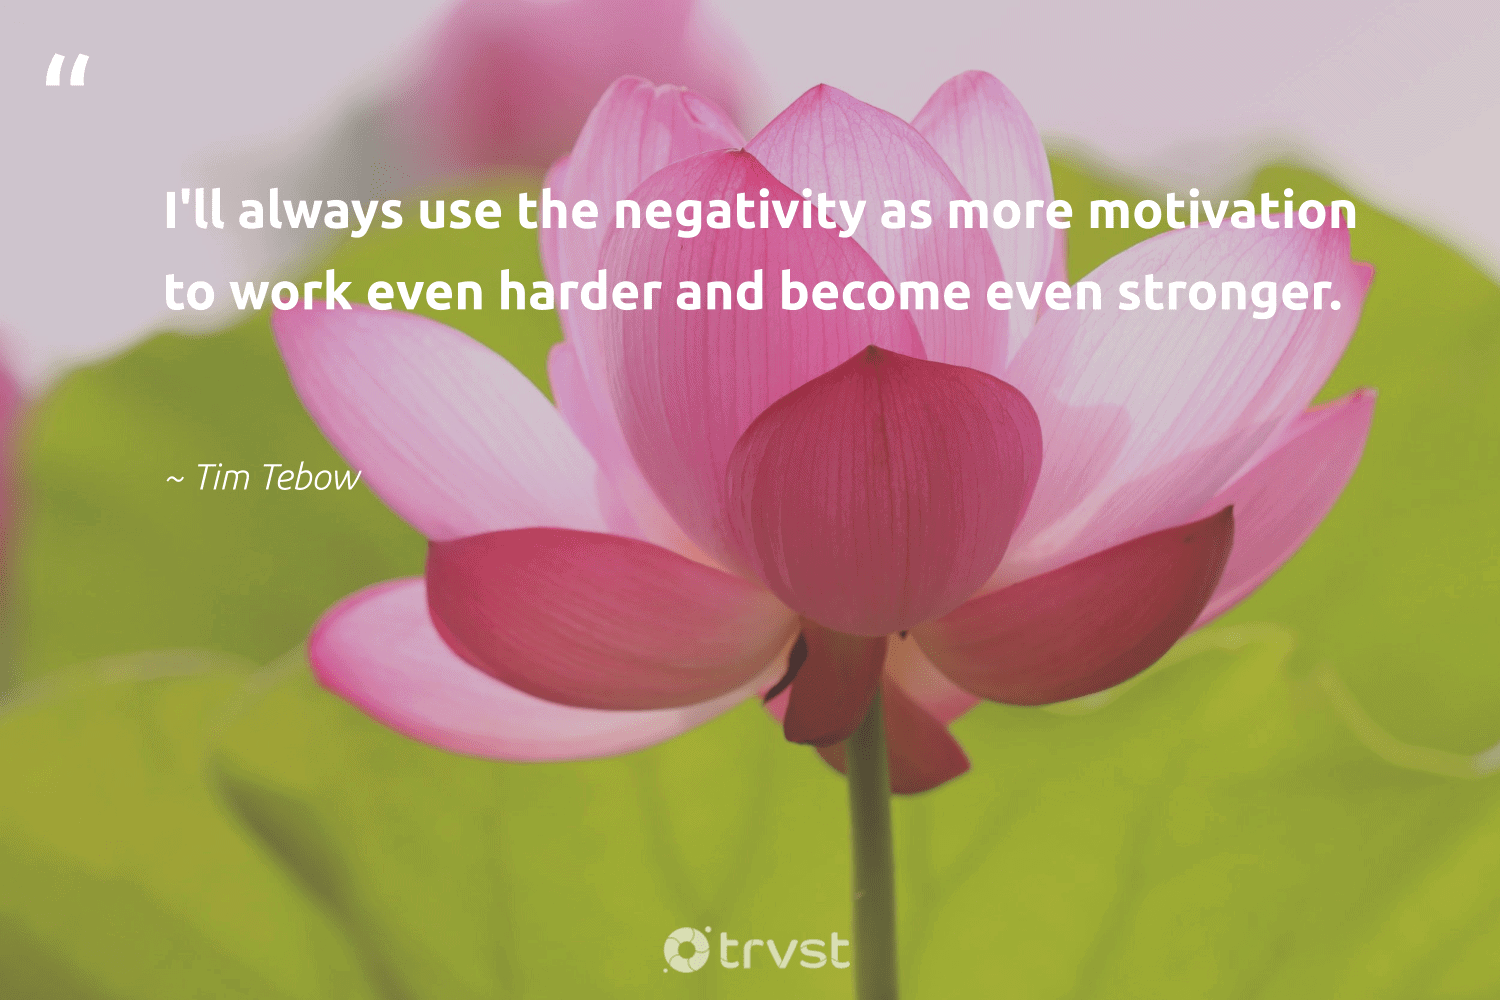 """""""I'll always use the negativity as more motivation to work even harder and become even stronger.""""  - Tim Tebow #trvst #quotes #motivation #meditation #youcandoit #togetherwecan #dosomething #mindful #createchange #health #socialimpact #meditate"""